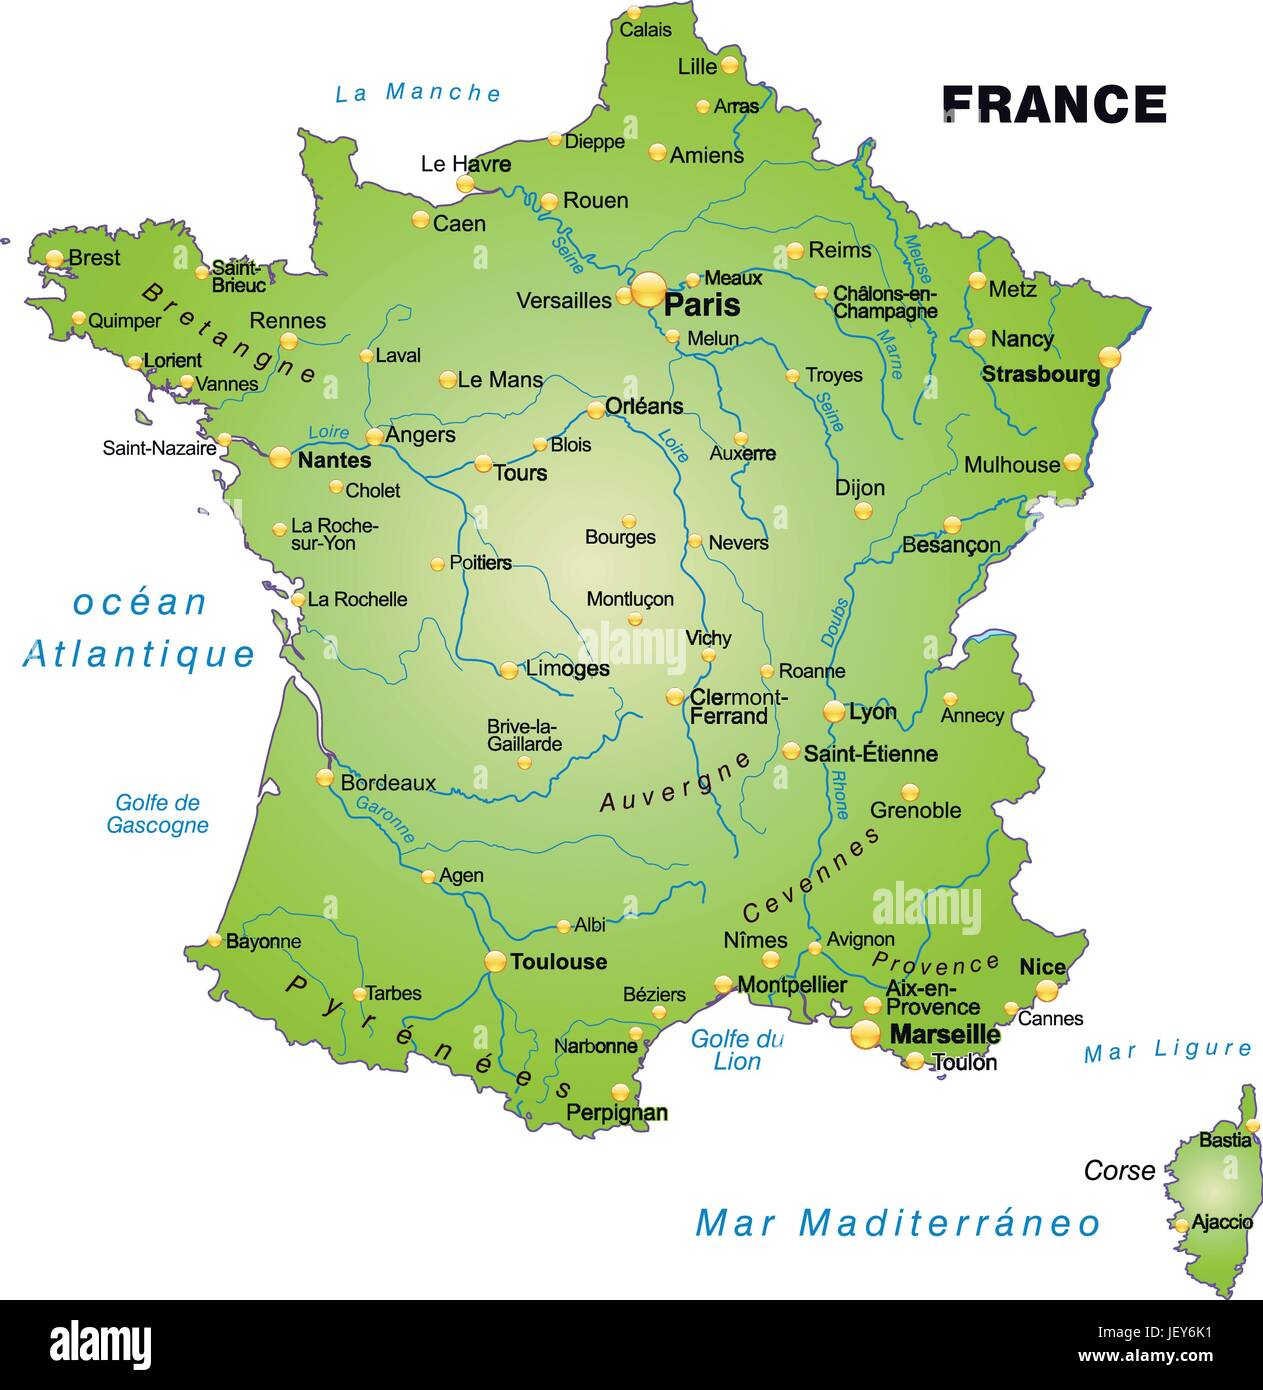 France card outline borders atlas map of the world map stock france card outline borders atlas map of the world map frankreichkarte gumiabroncs Choice Image